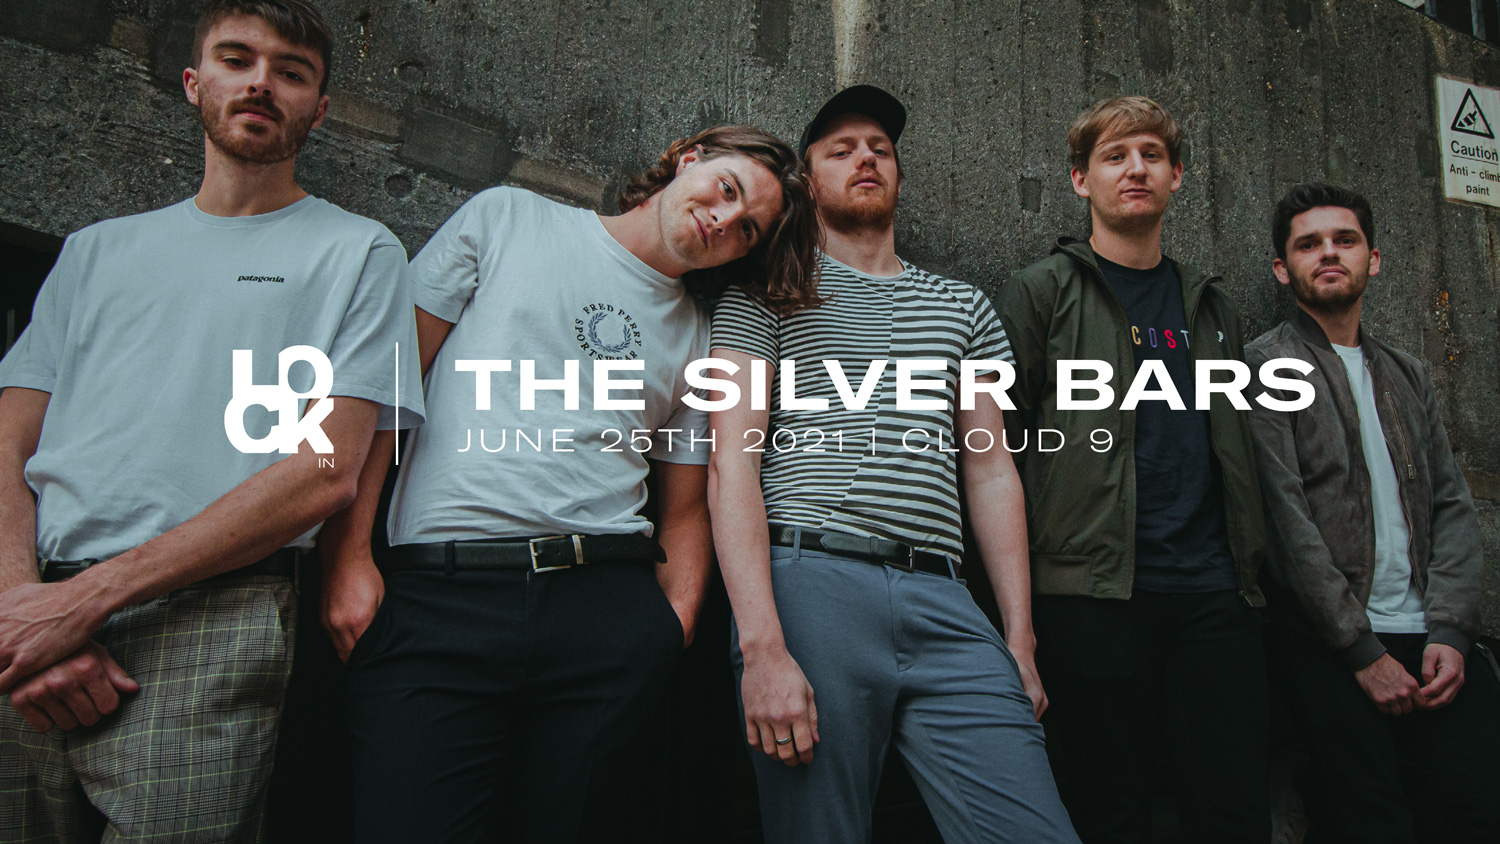 The Lock In Presents: The Silver Bars